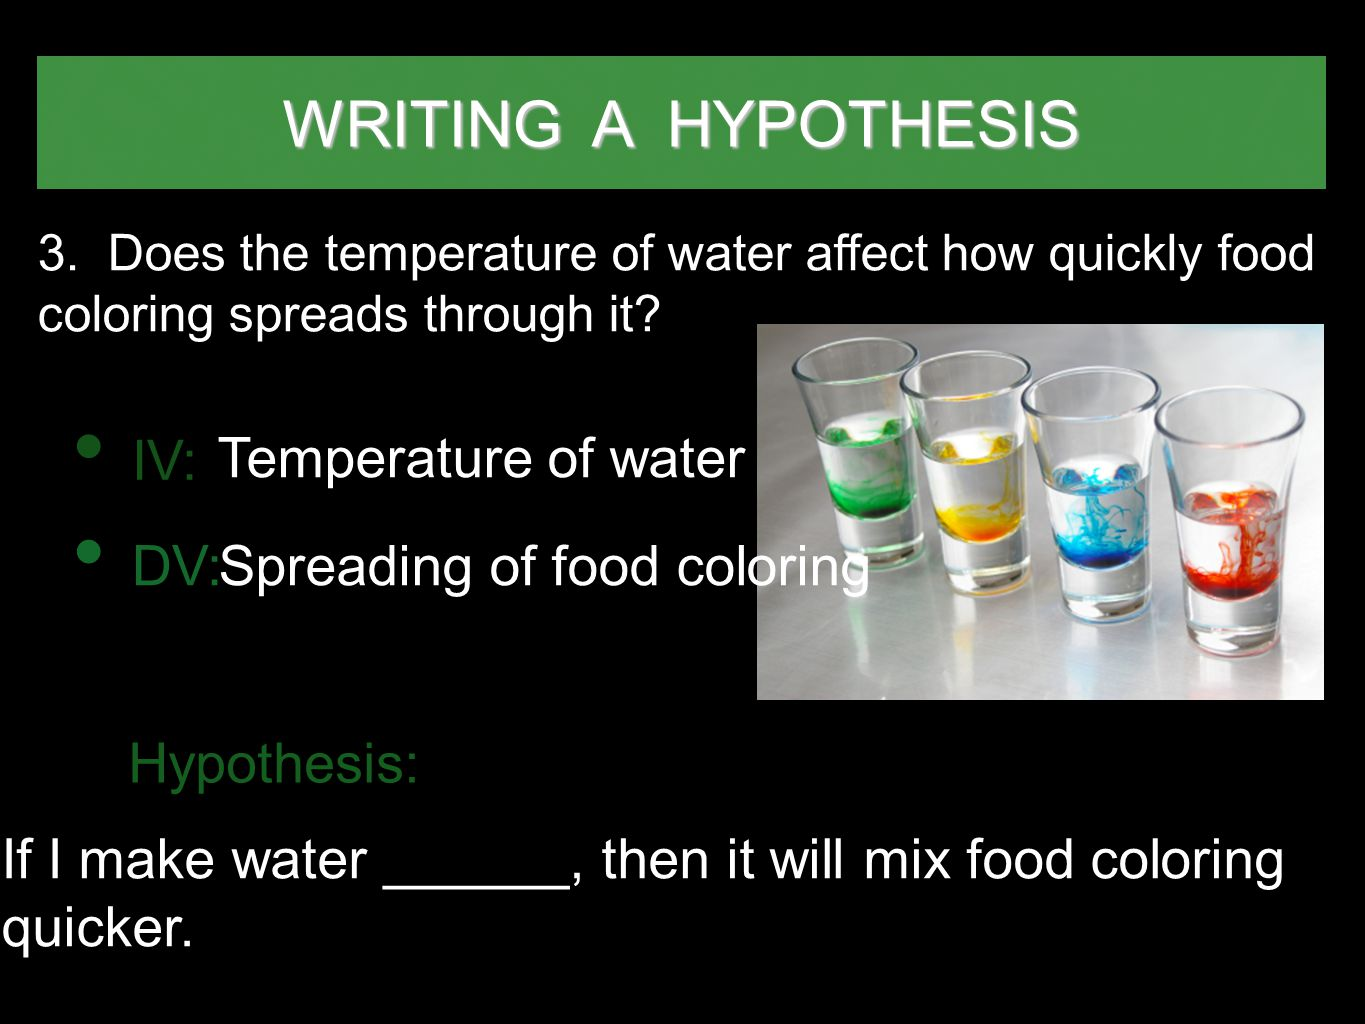 Spreading of food coloring